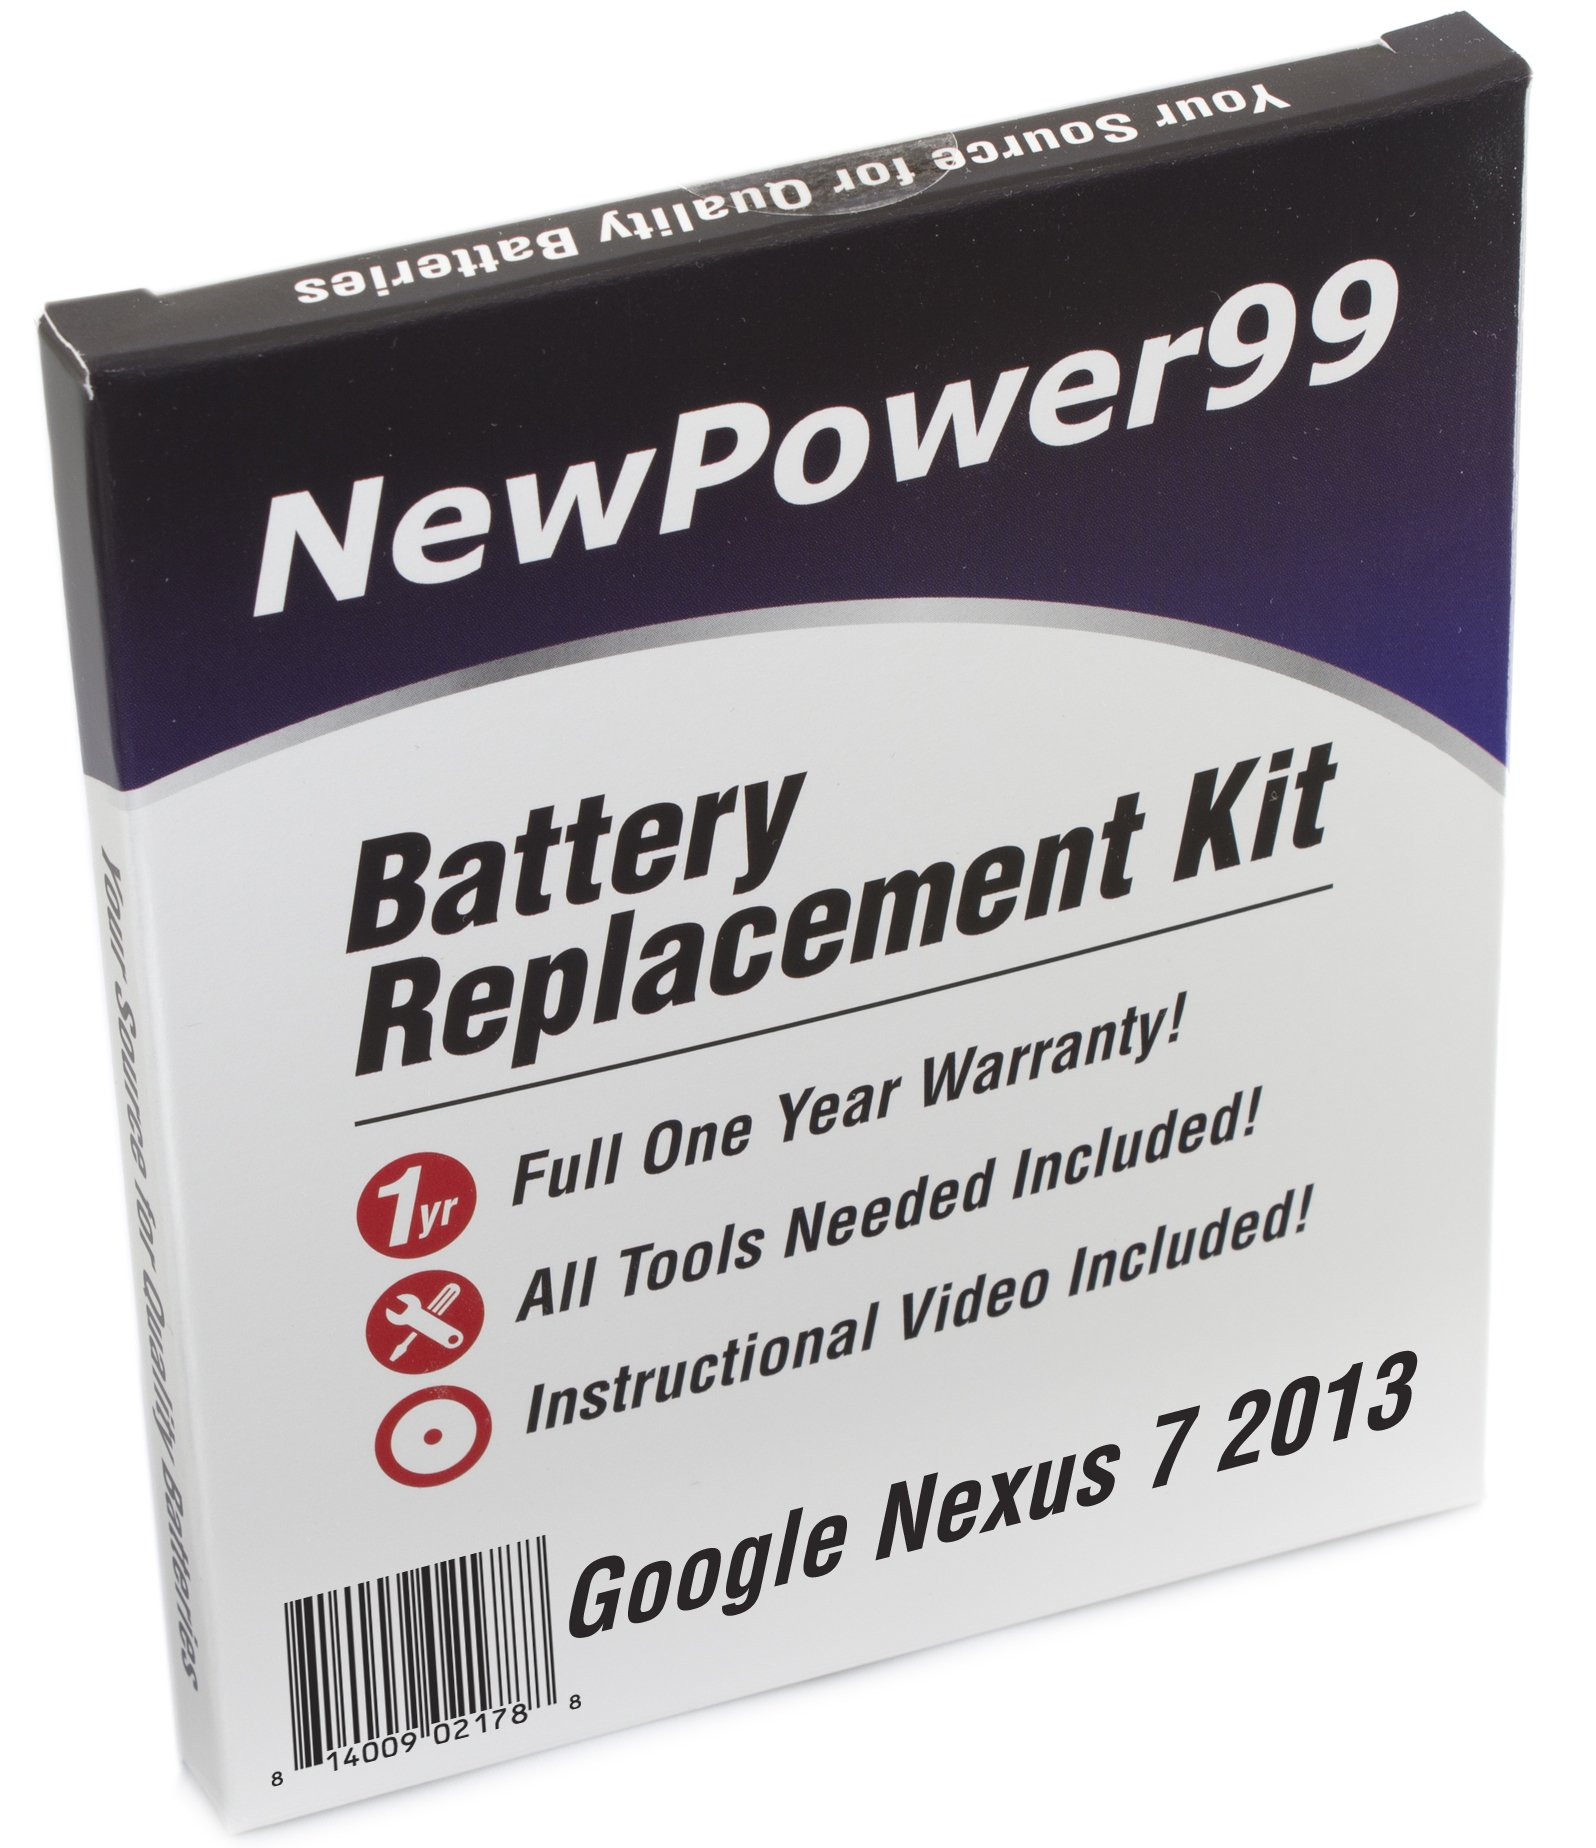 Google Nexus 7 2013 Battery Replacement Kit with Video Installation DVD, Installation Tools, and Extended Life Battery